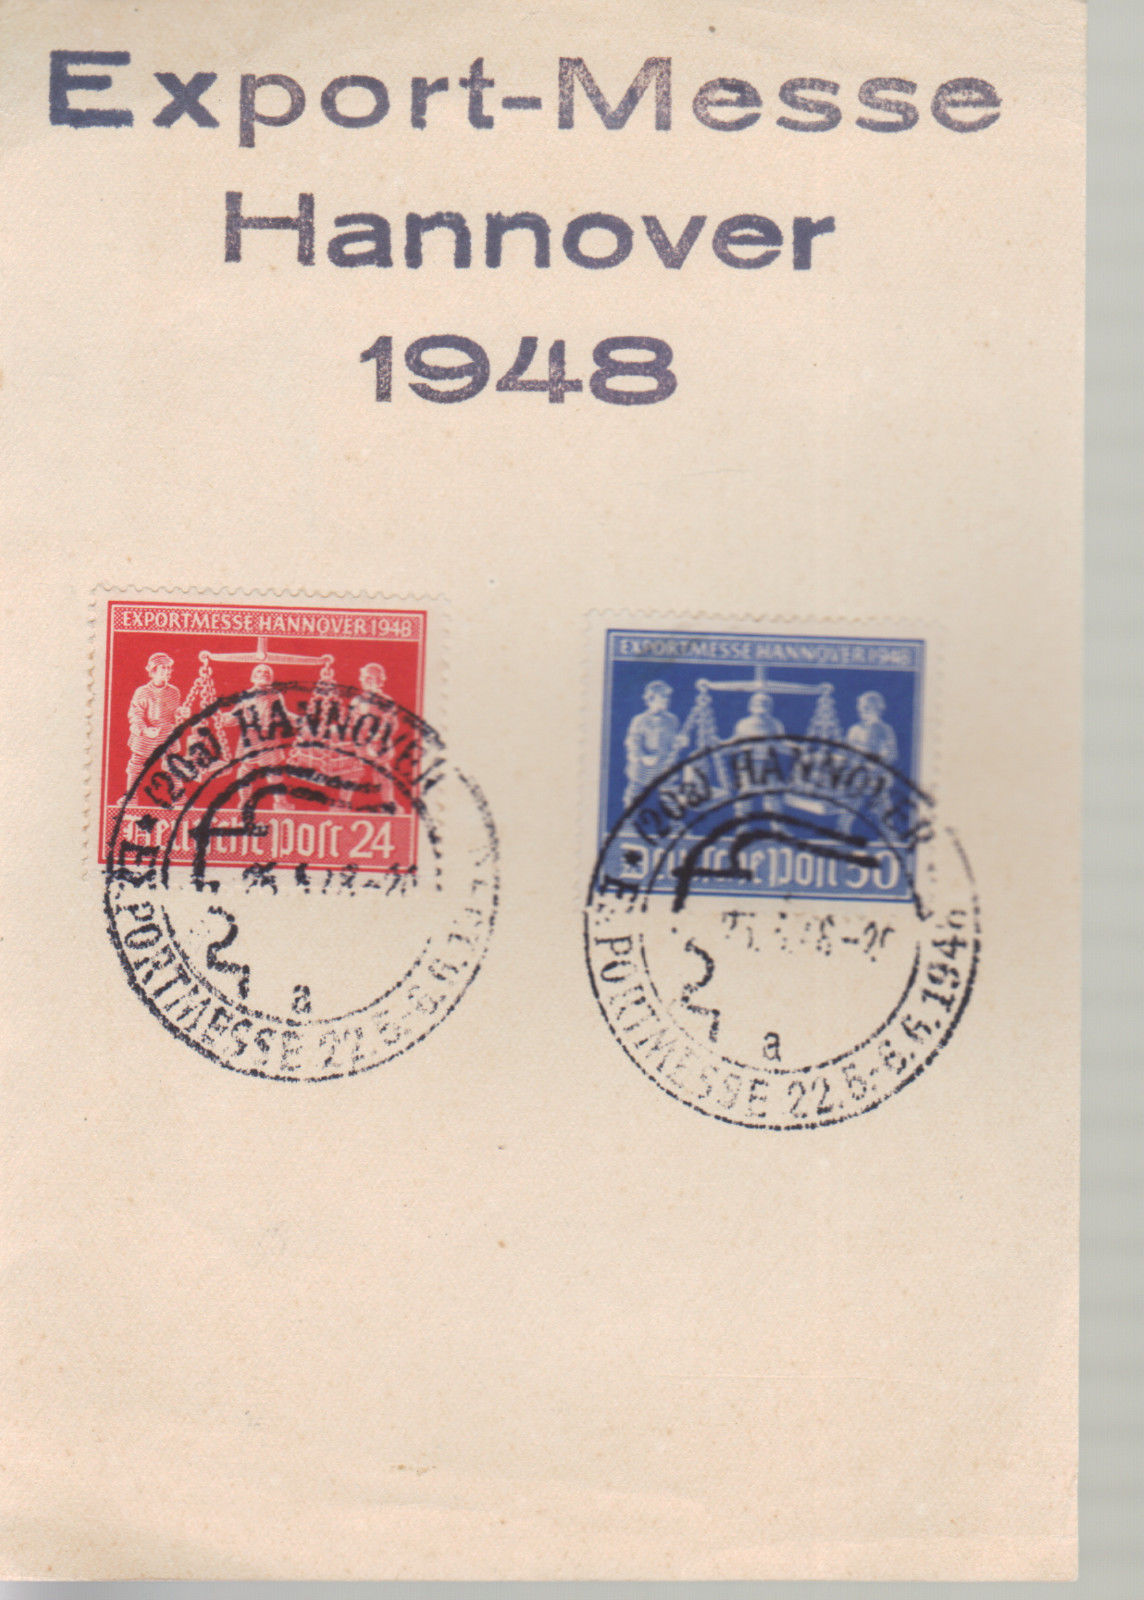 German 1948 Hannover Export Messe special cancel